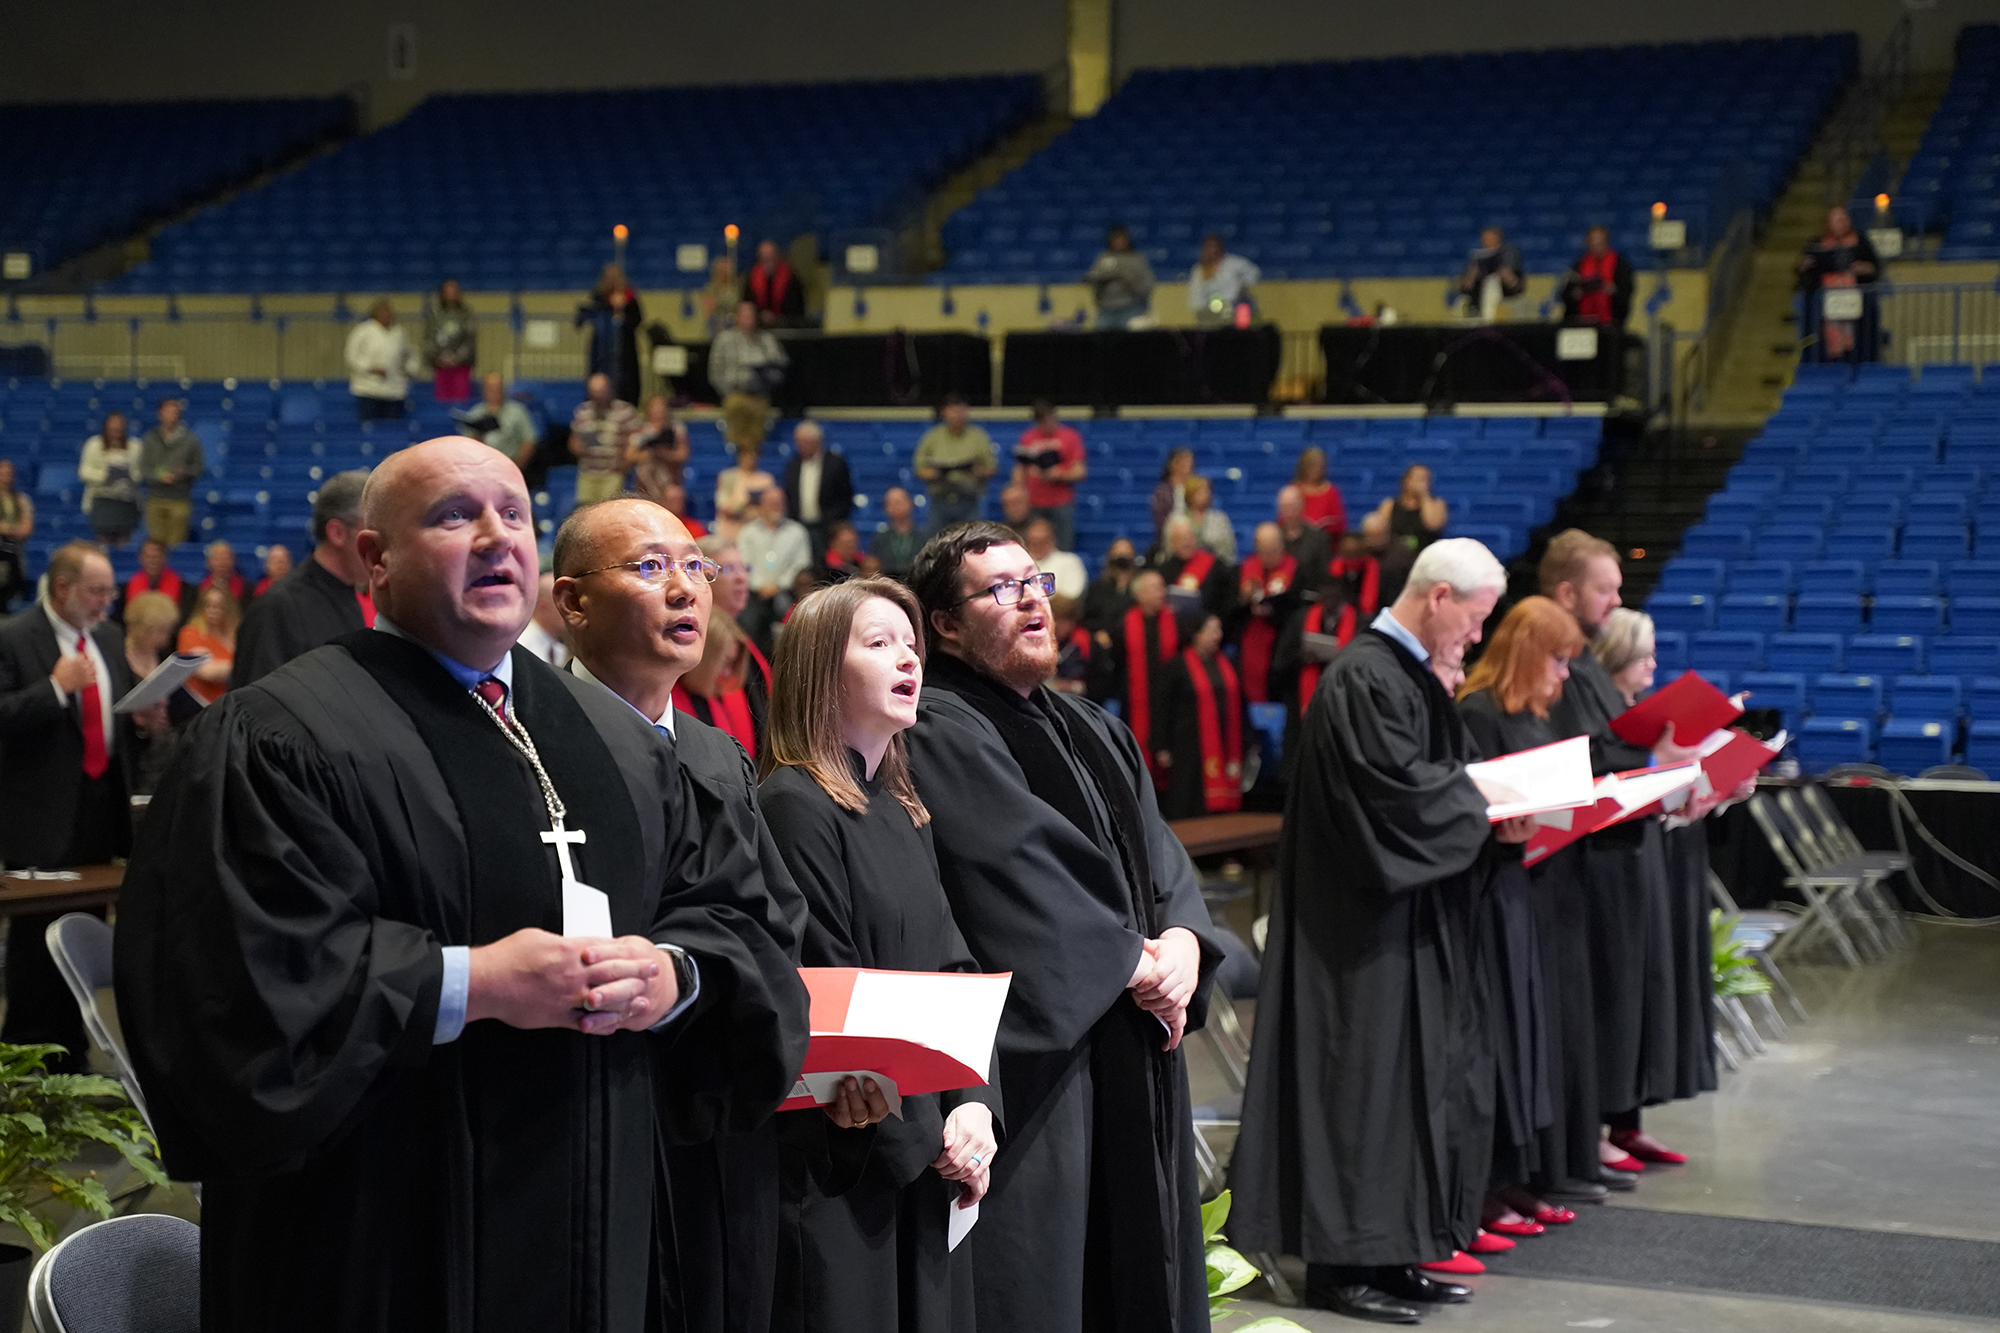 ordained and commissioned members